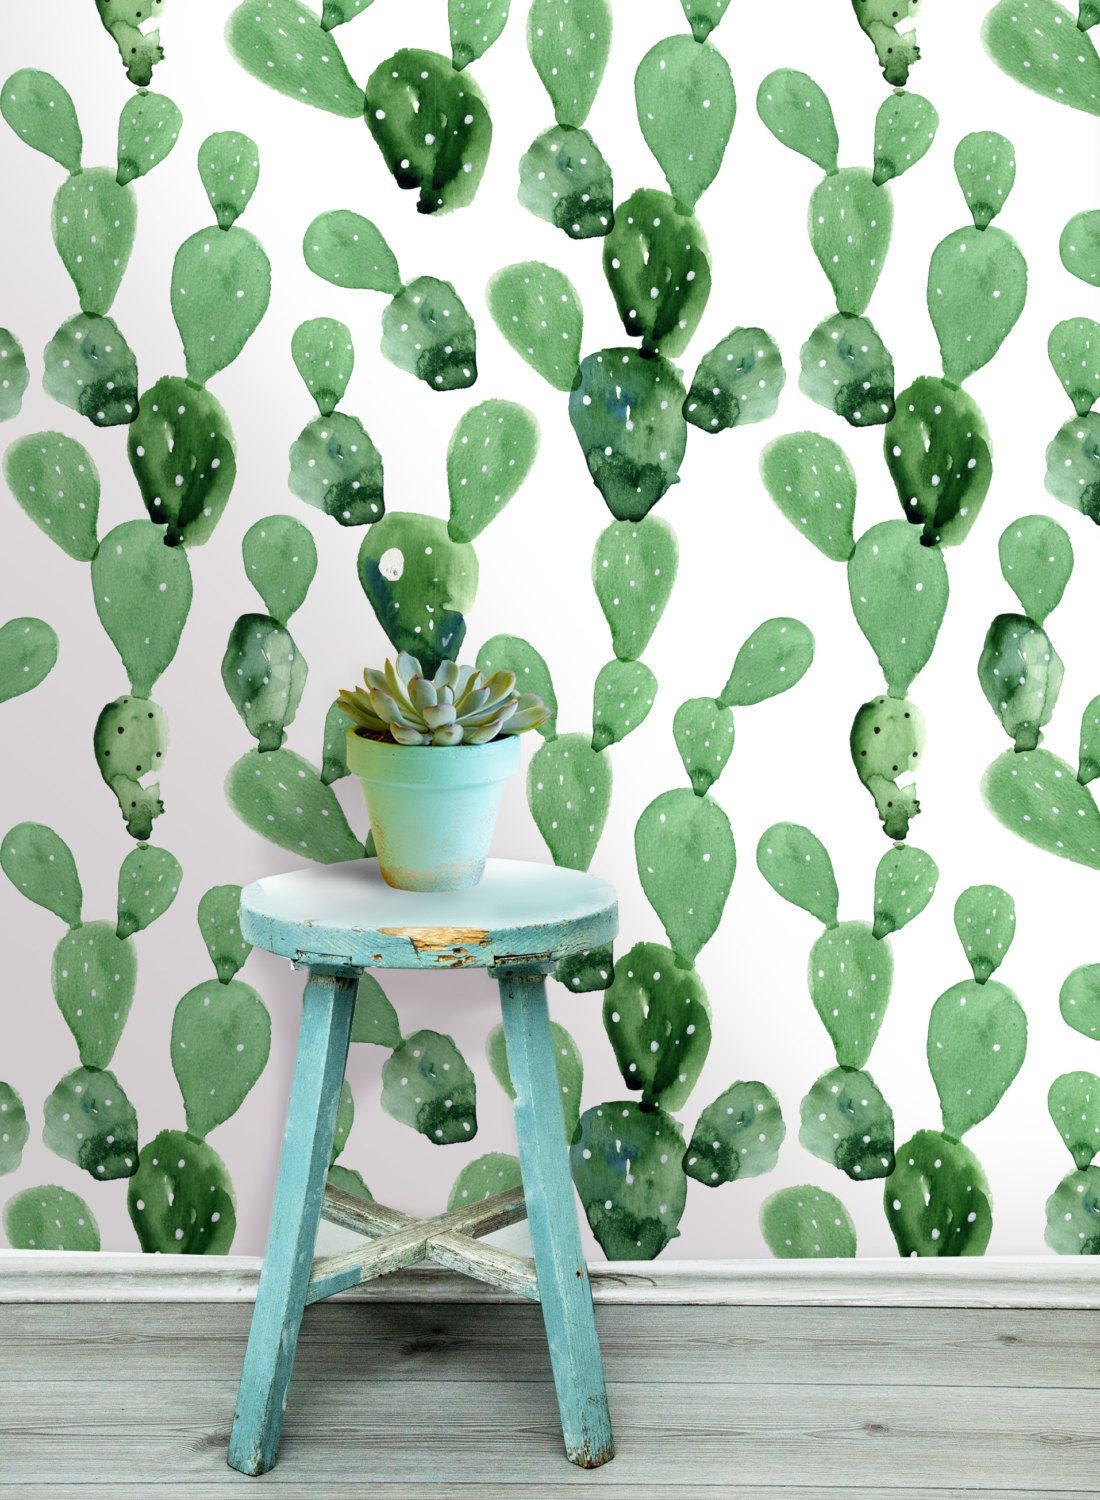 Cactus wall mural self adhesive fabric wallpaper office ideas cactus wall mural self adhesive fabric wallpaper amipublicfo Image collections